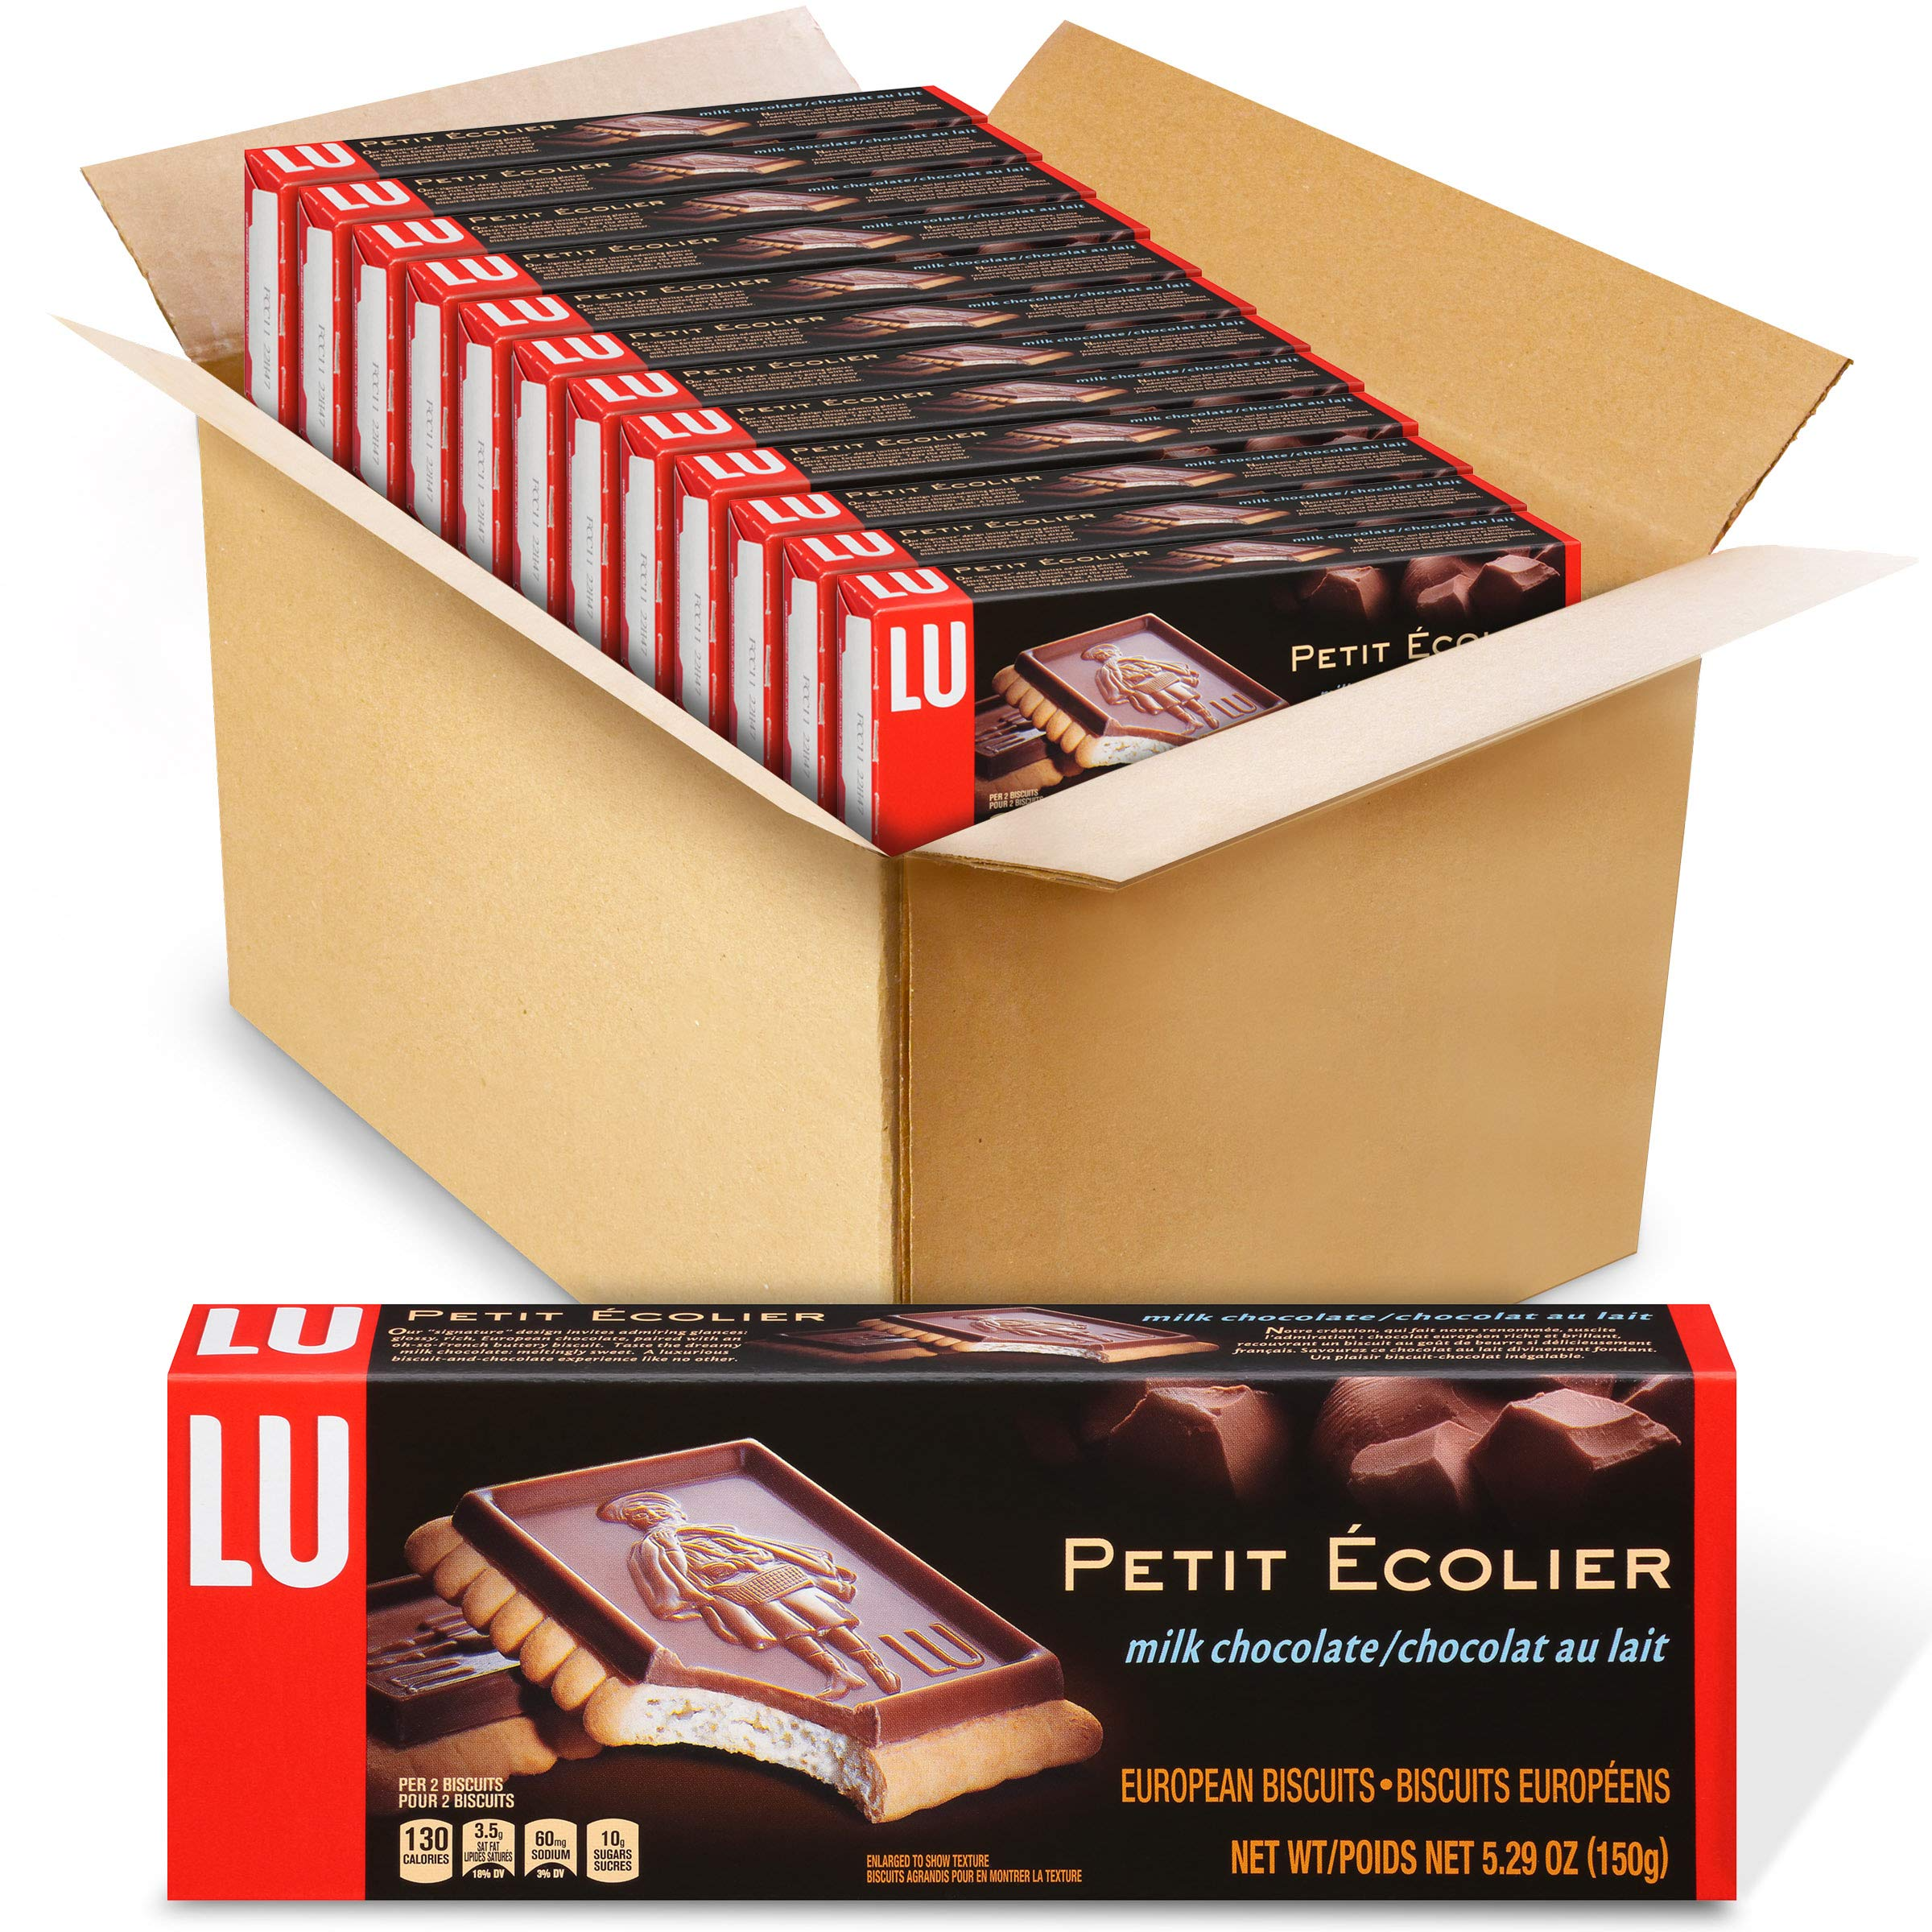 Lu Petit Ecolier European Milk Chocolate Biscuit Cookies, 12 - 5.3 oz Boxes